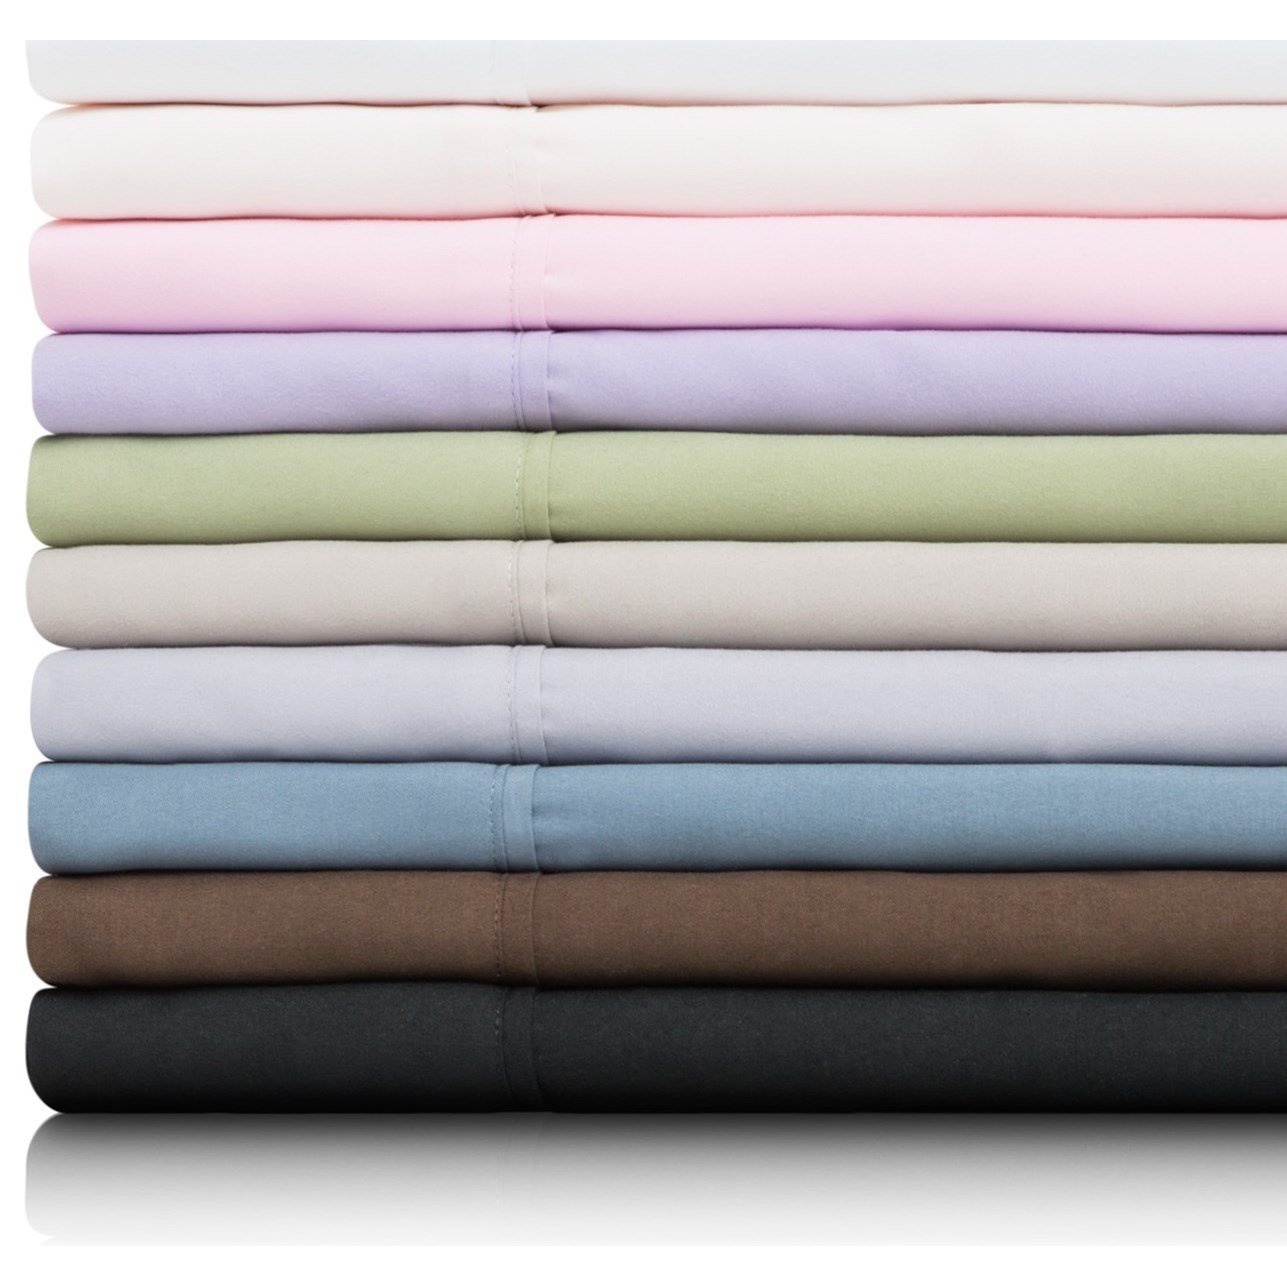 Malouf Brushed Microfiber Twin Woven™ Brushed Microfiber Sheet Set - Item Number: MA90TTDRMS